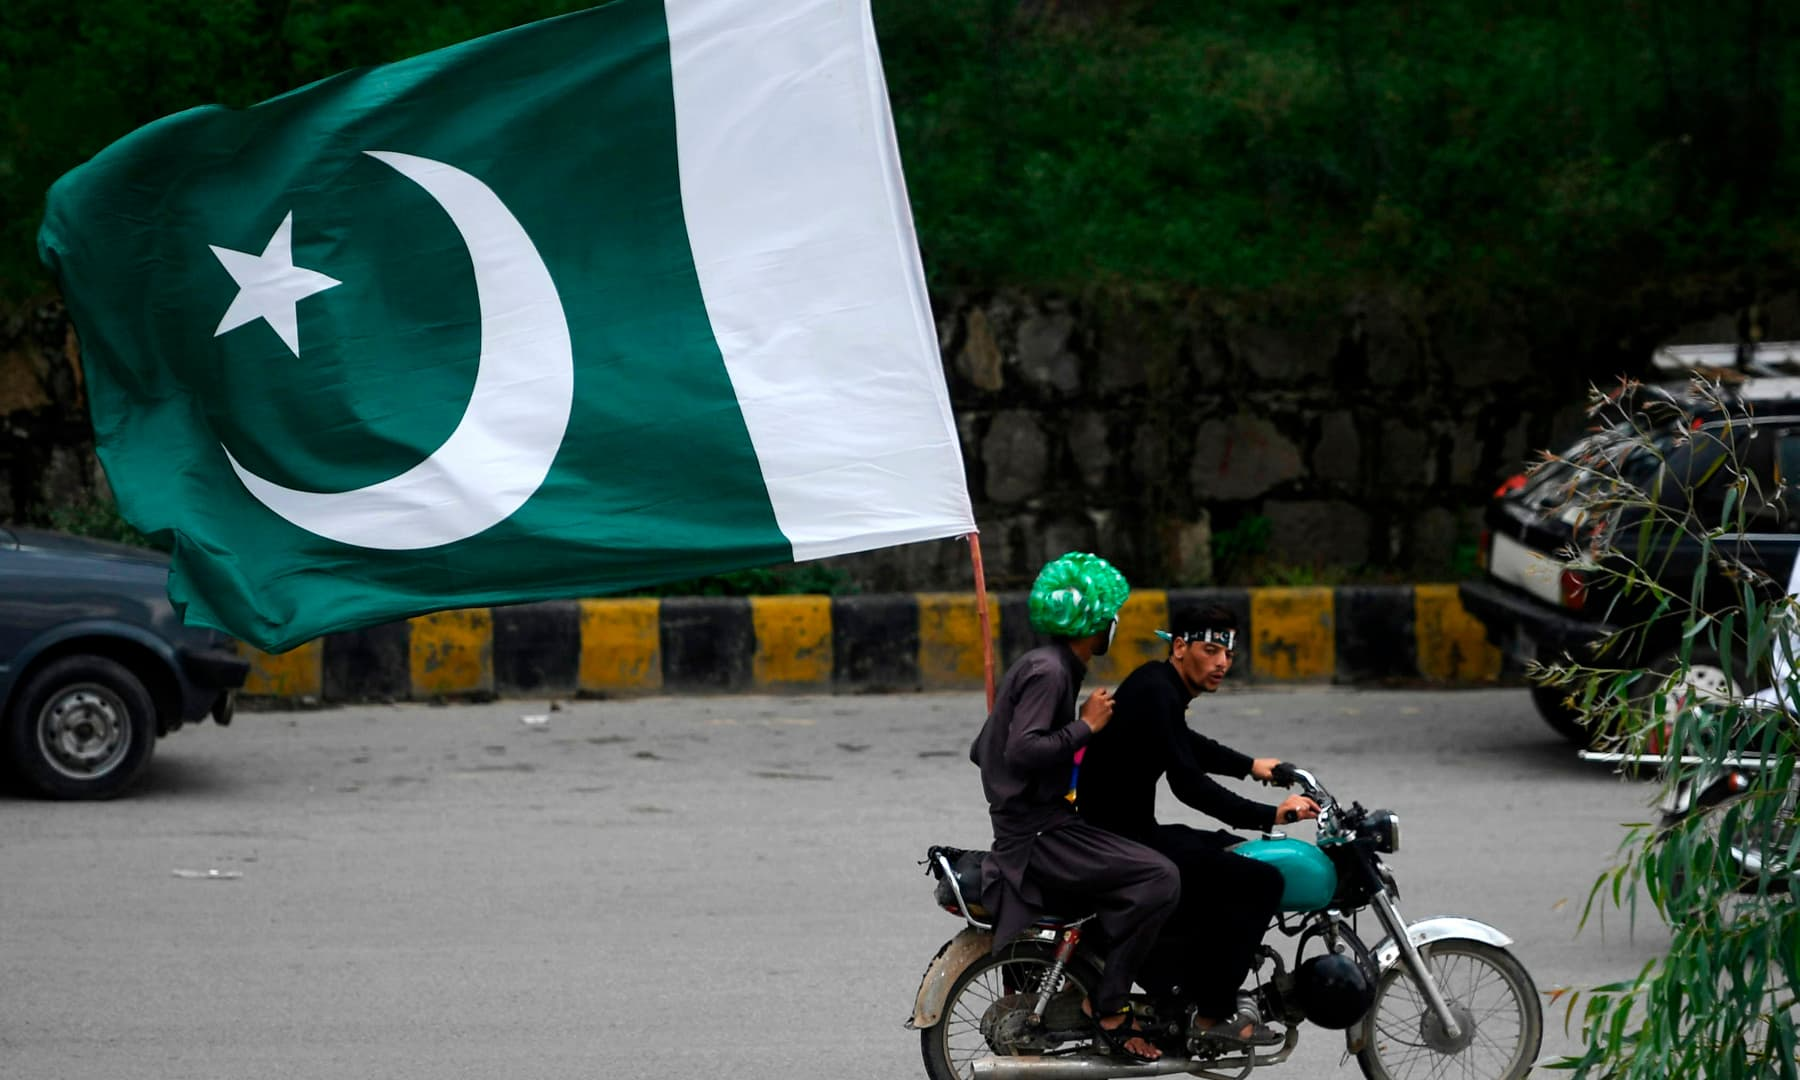 Men ride on a bike with a large flag of Pakistan along a street during Independence Day celebrations in Islamabad on August 14. — AFP